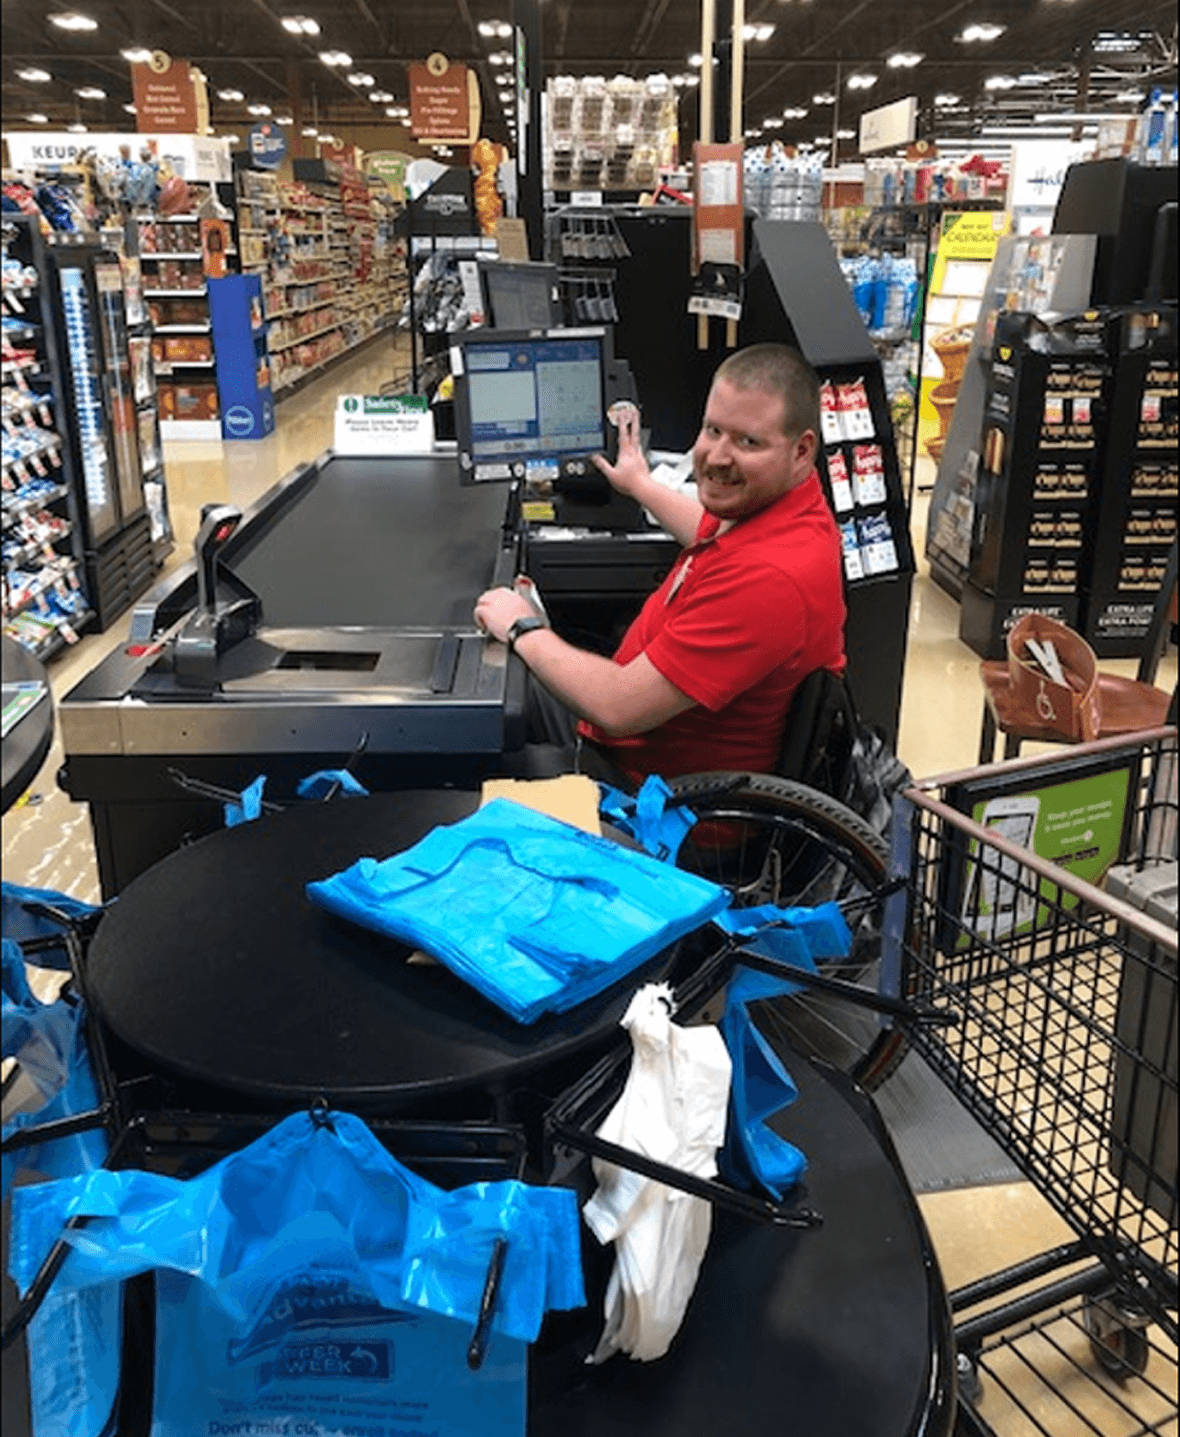 Travis in wheelchair working cash register